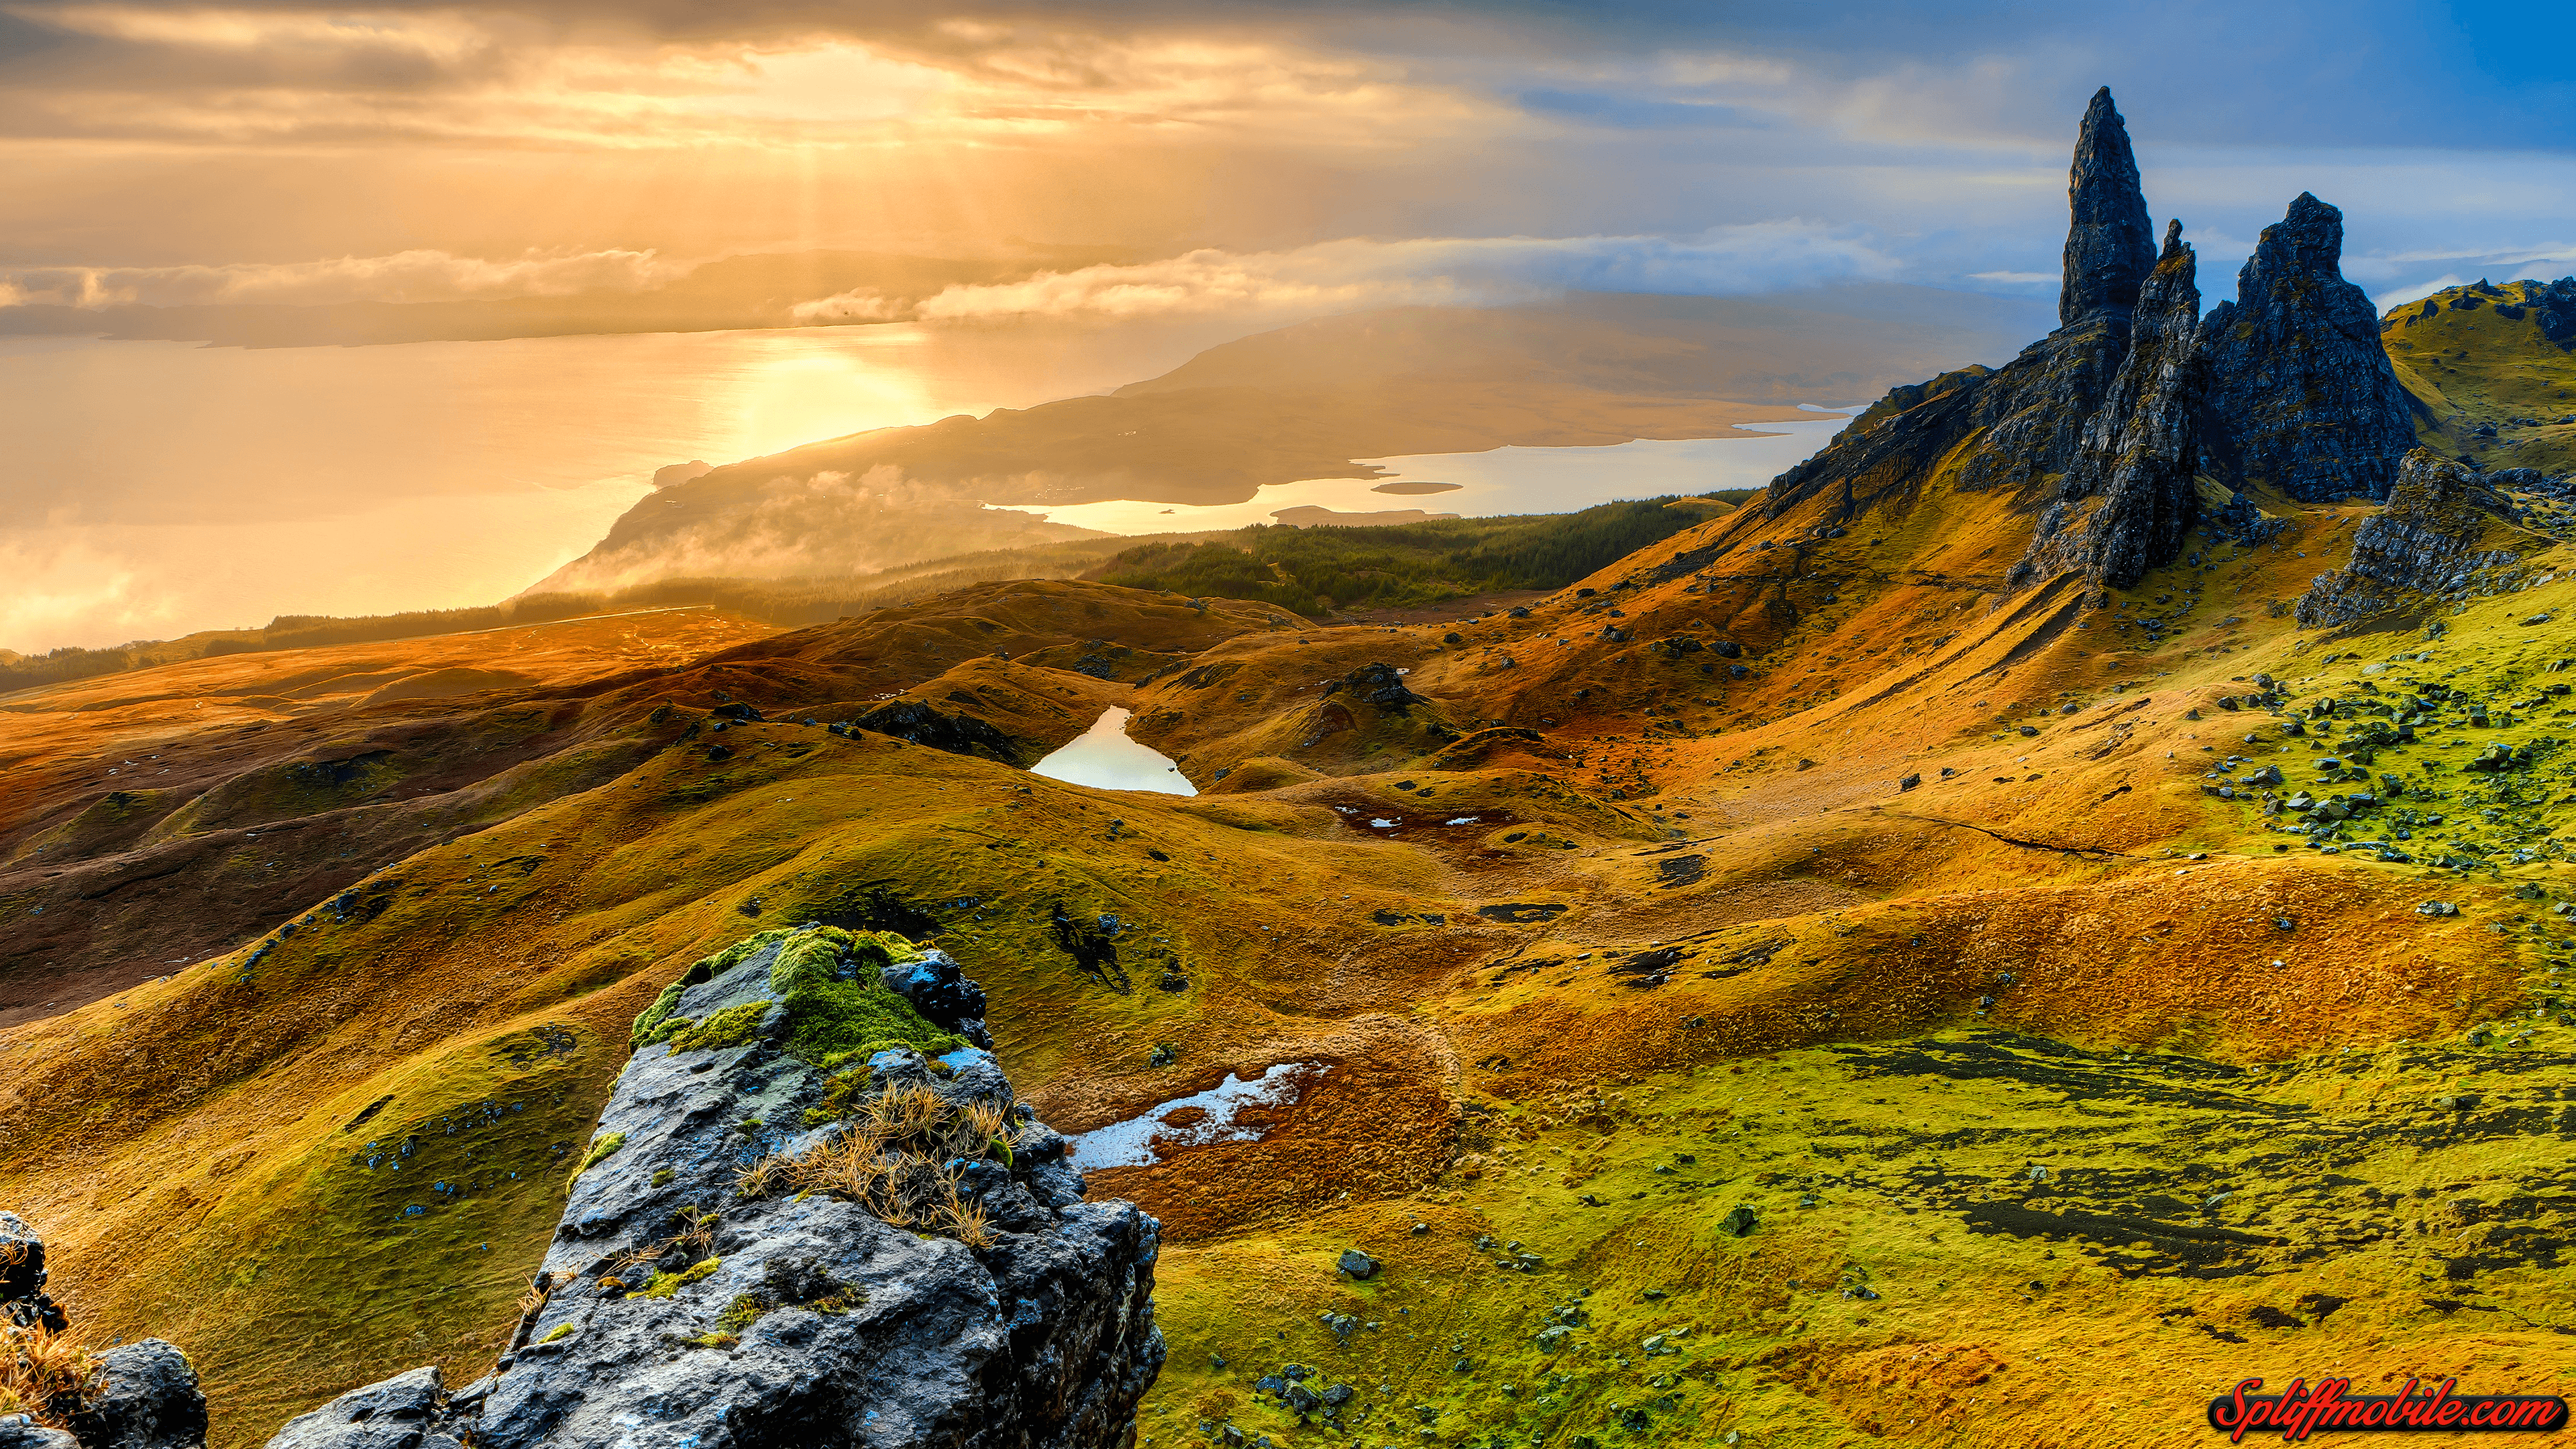 Hd Scottish Wallpapers Top Free Hd Scottish Backgrounds